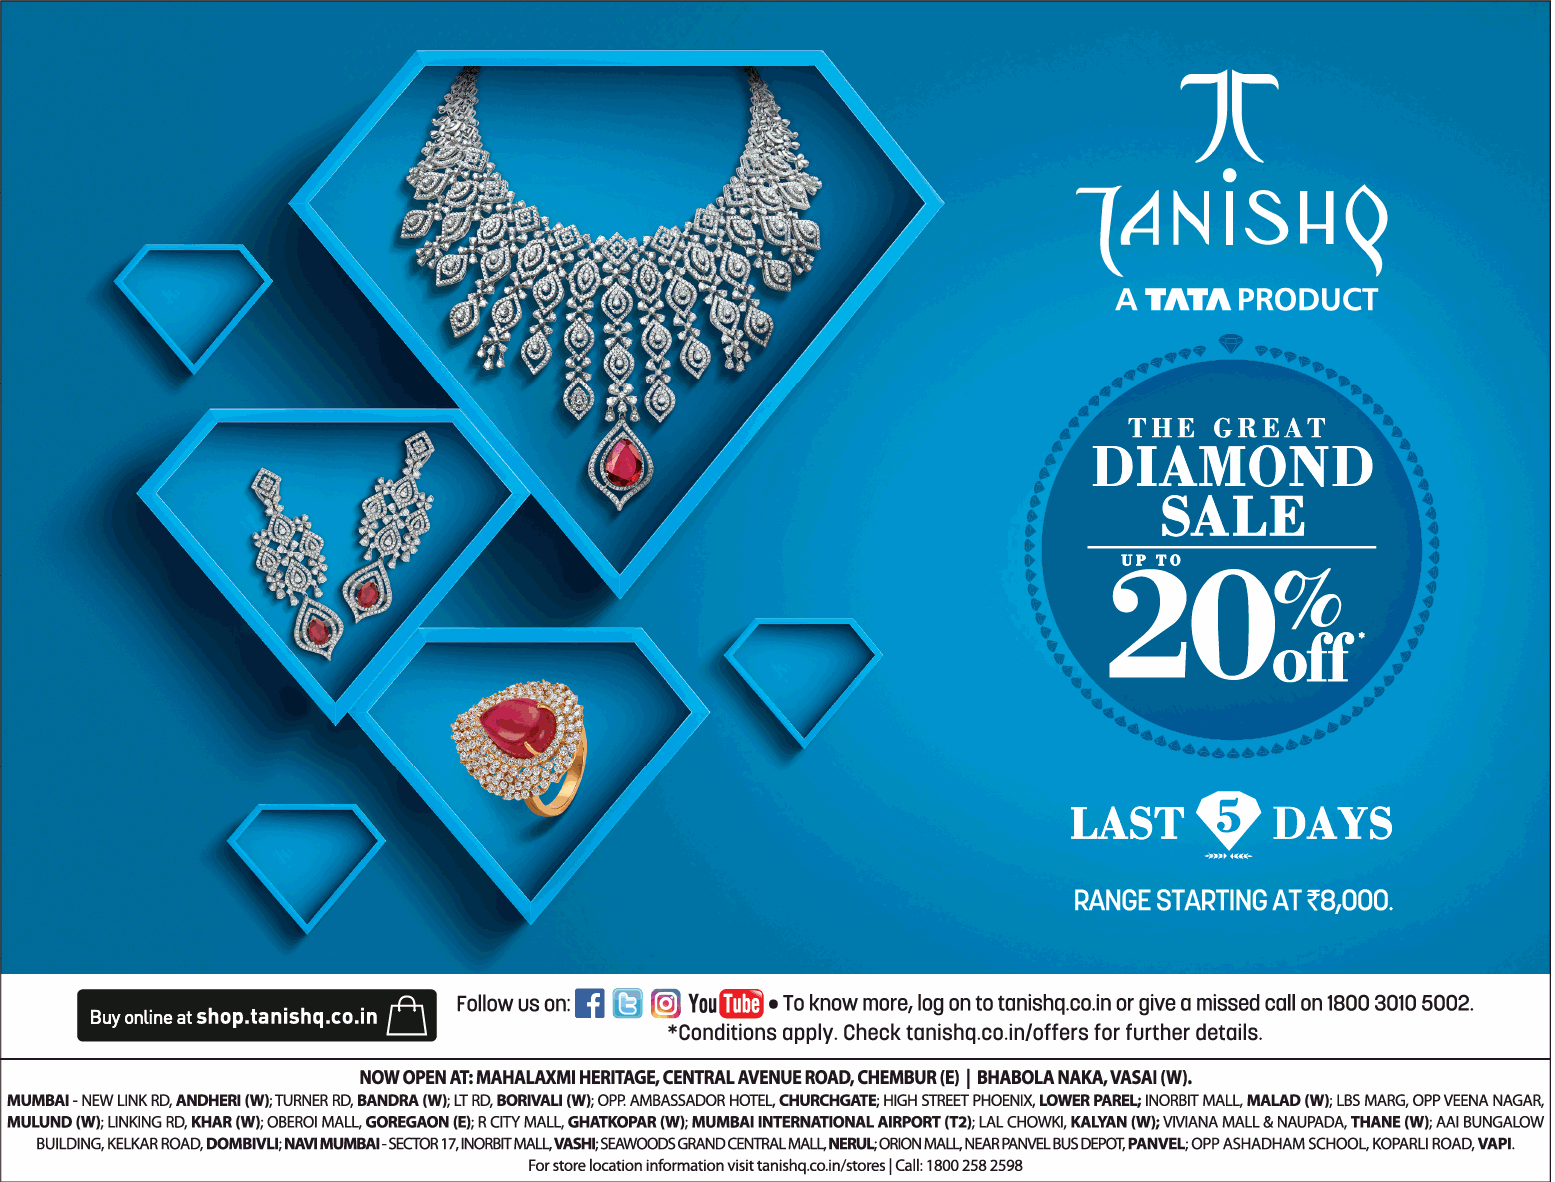 tanishq-the-great-diamond-sale-upto-20%-off-ad-bombay-times-28-02-2019.png